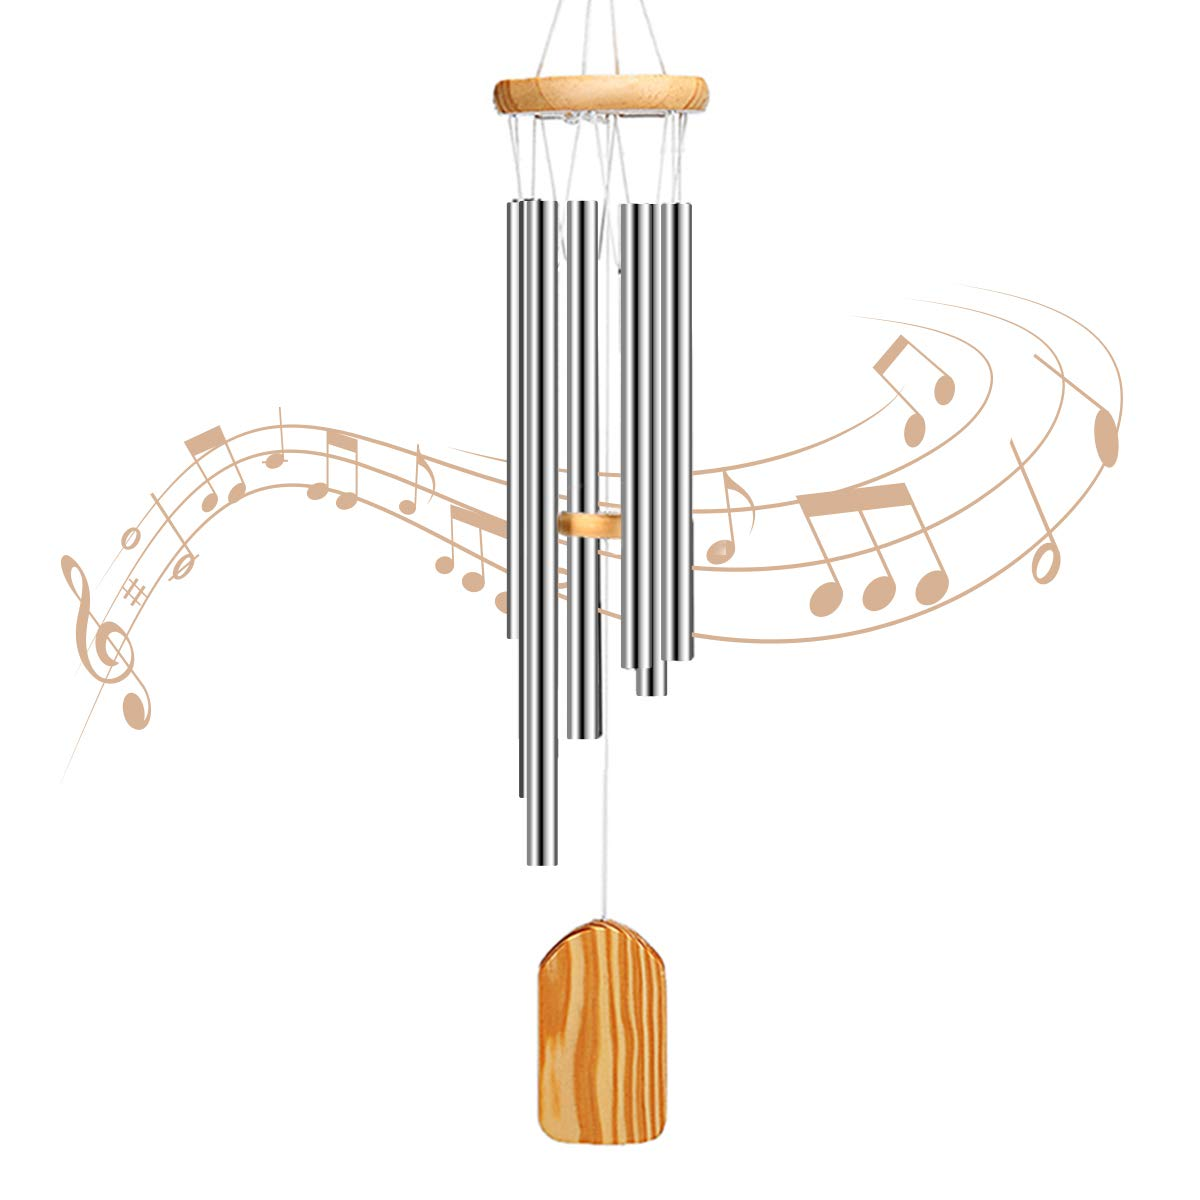 PATHONOR Wind Chime, Amazing Grace Wind Chime 6 Metal Tubes Wind Chimes  Outdoor Best Gift for Mom Family, Friends, Children, Lovers, Colleagues.